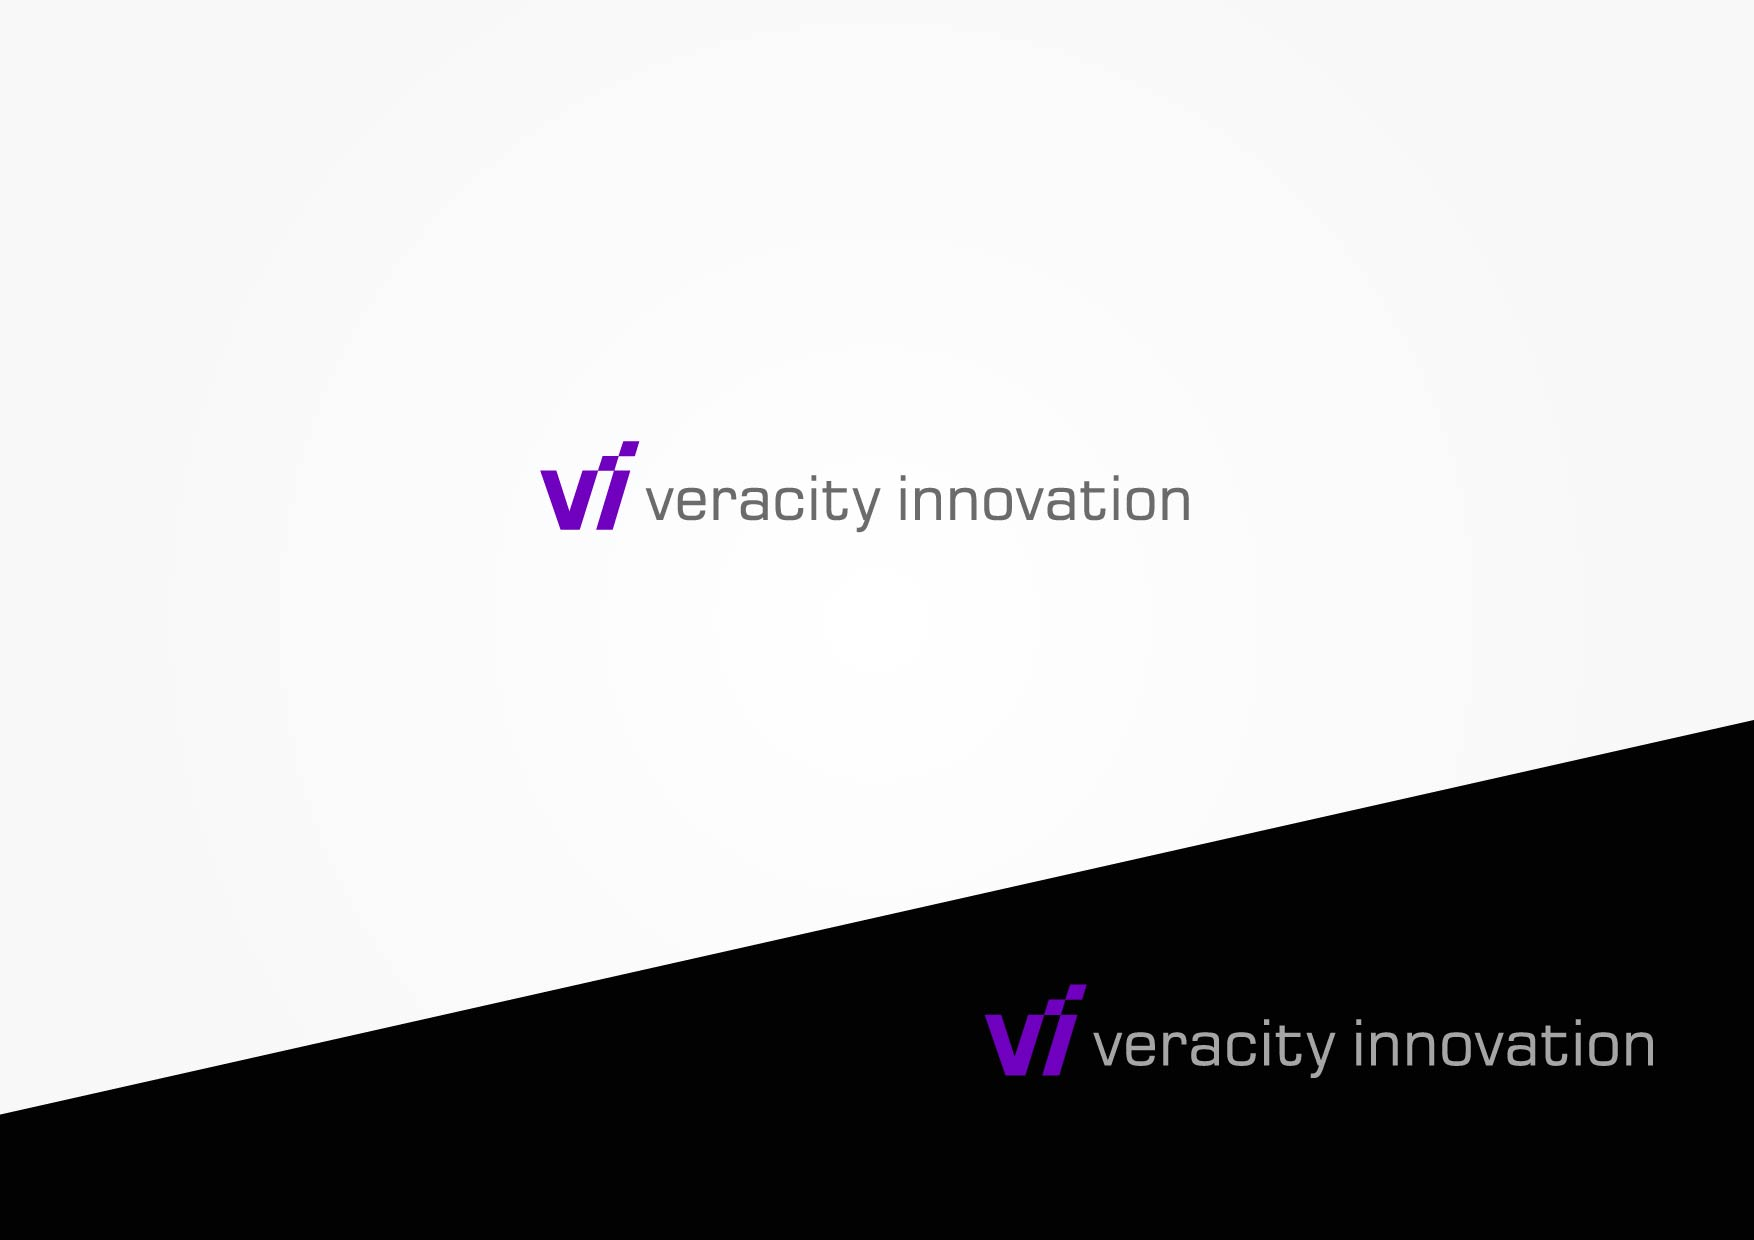 Logo Design by Osi Indra - Entry No. 70 in the Logo Design Contest Creative Logo Design for Veracity Innovation, LLC.